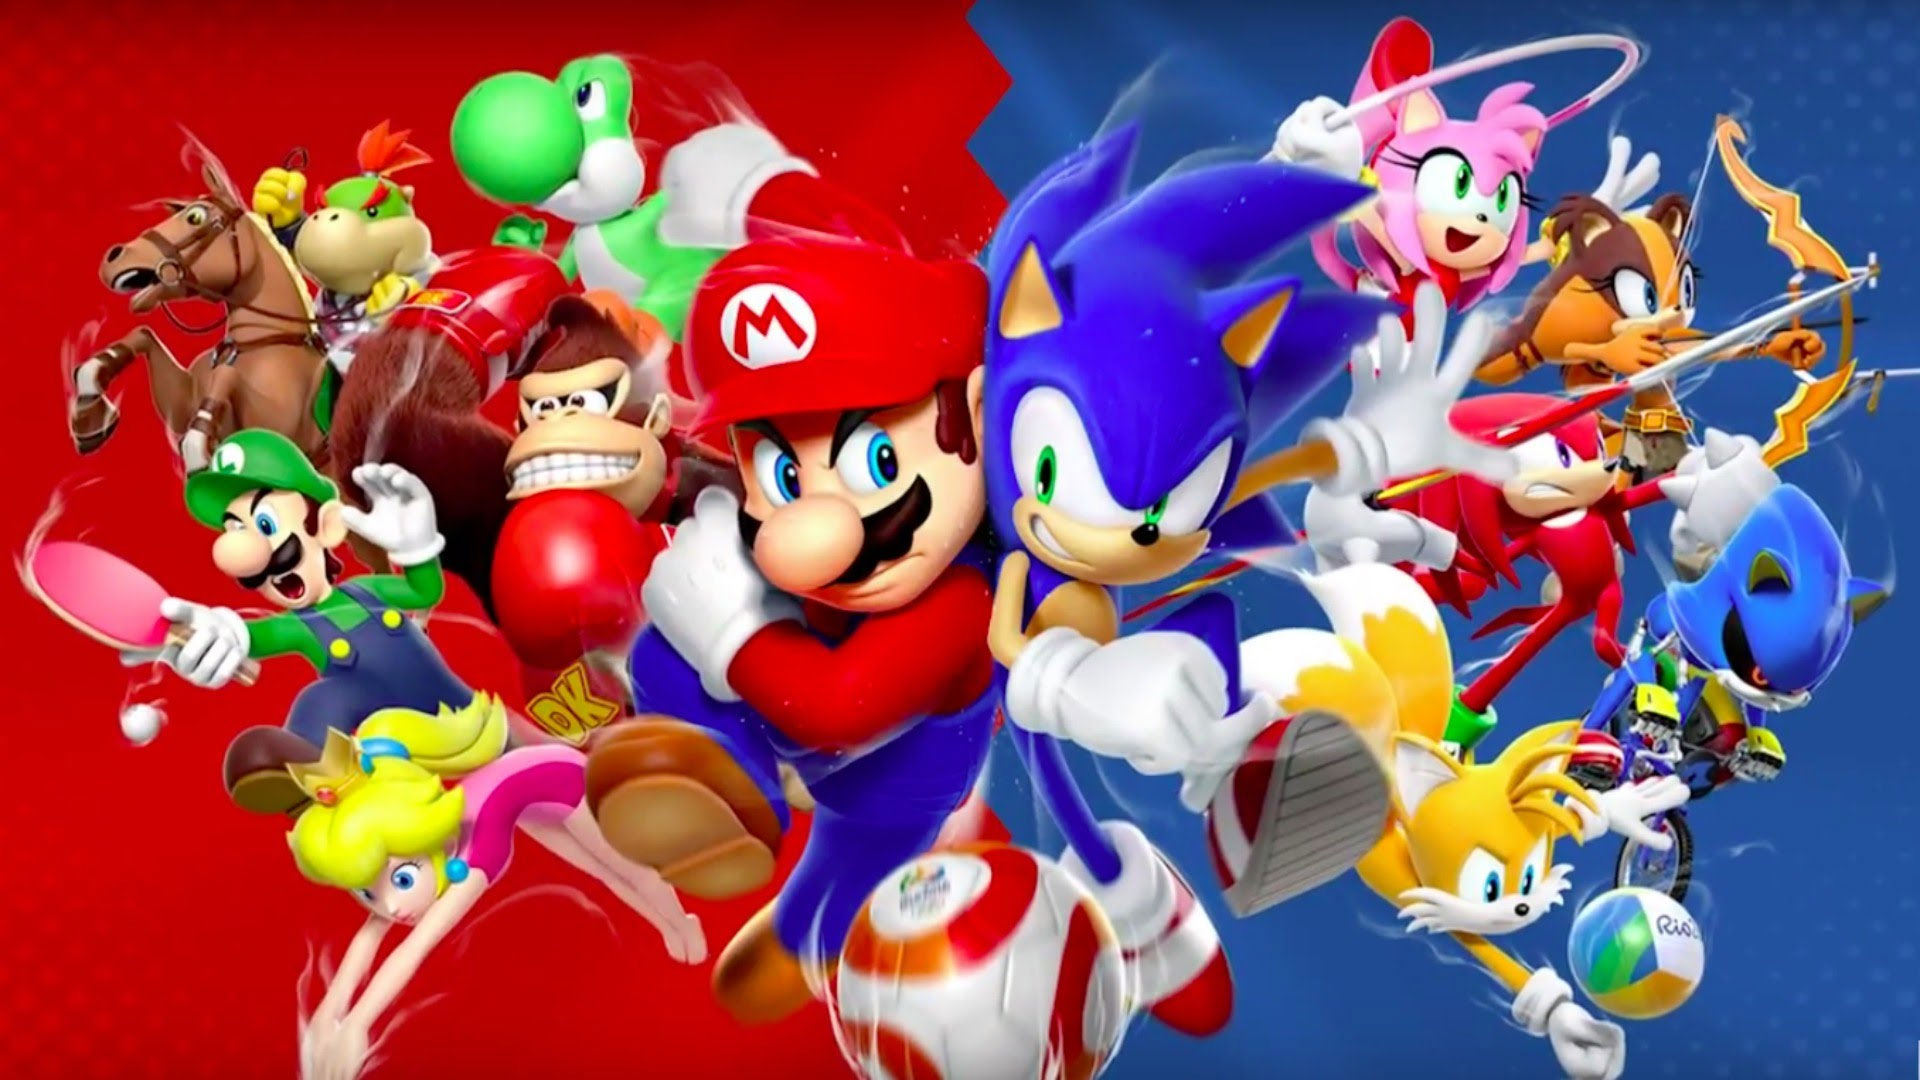 Mario And Sonic At The Rio 2016 Olymic Games 4K Wallpaper